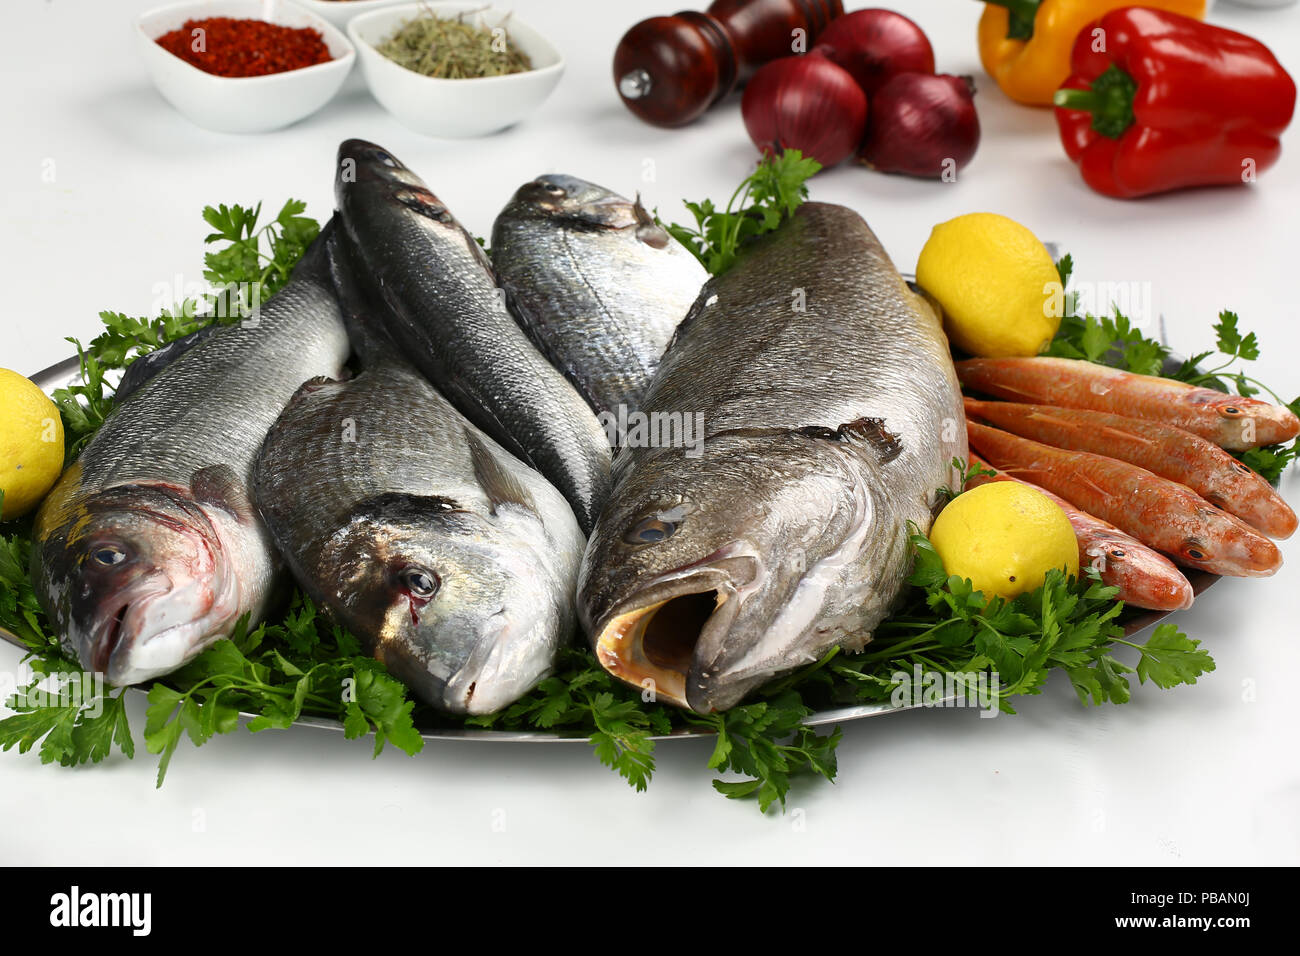 assortment of raw fishes on plate - Stock Image